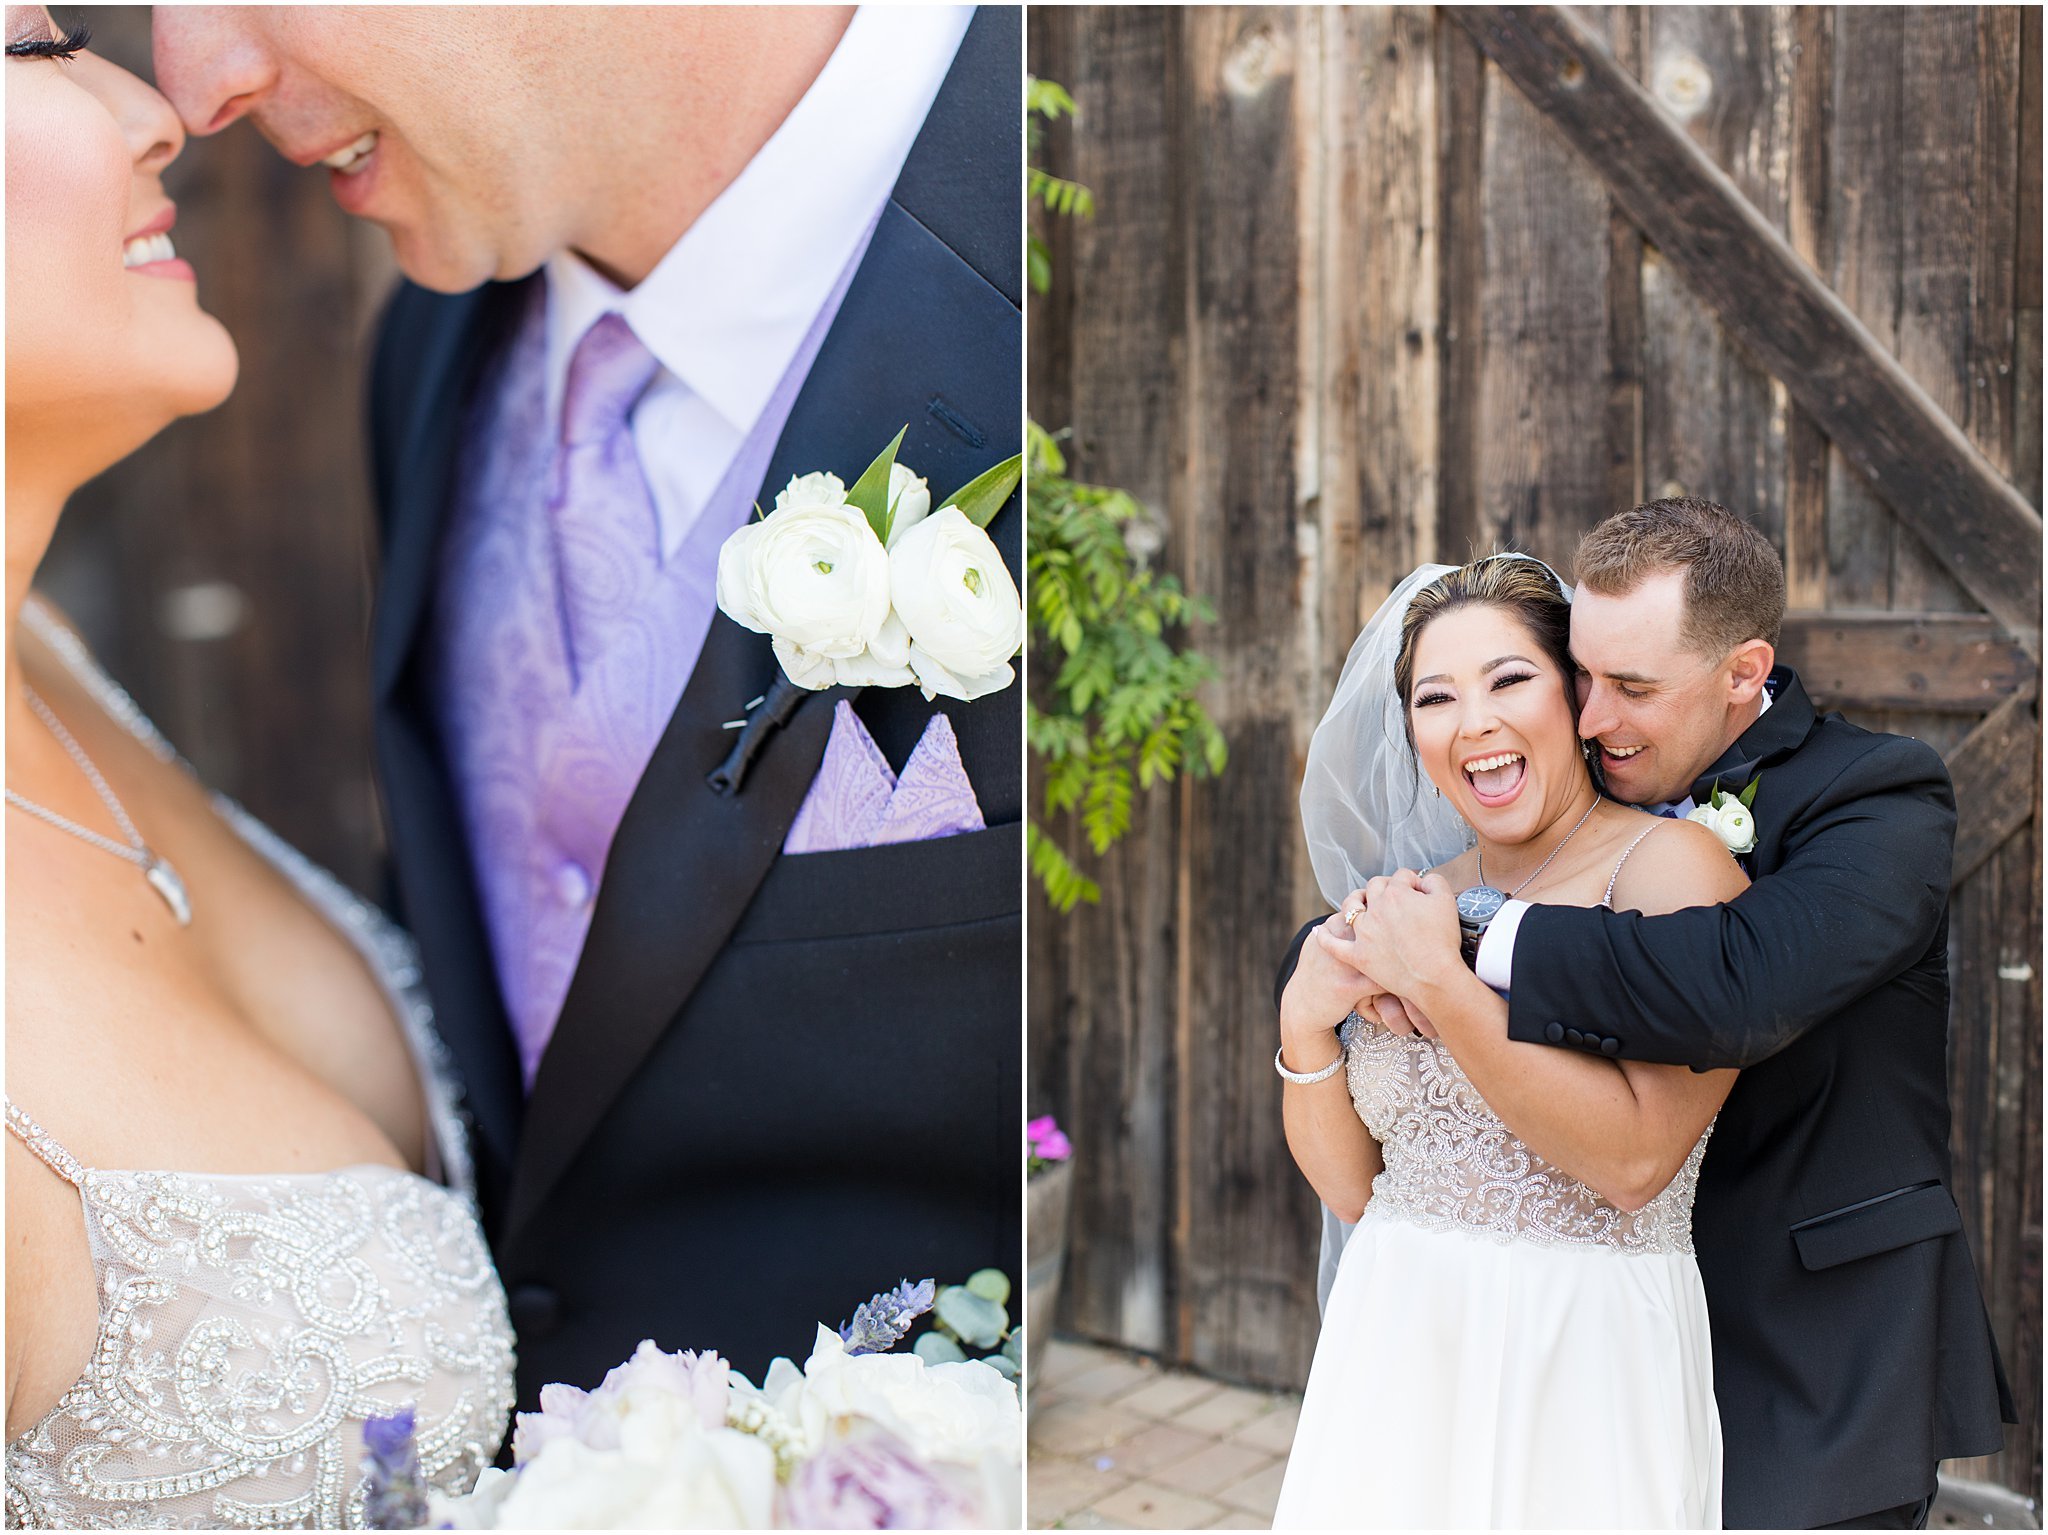 2019 wedding san juan bautista hacienda de leal vineyards bay area wedding photographer_0023.jpg